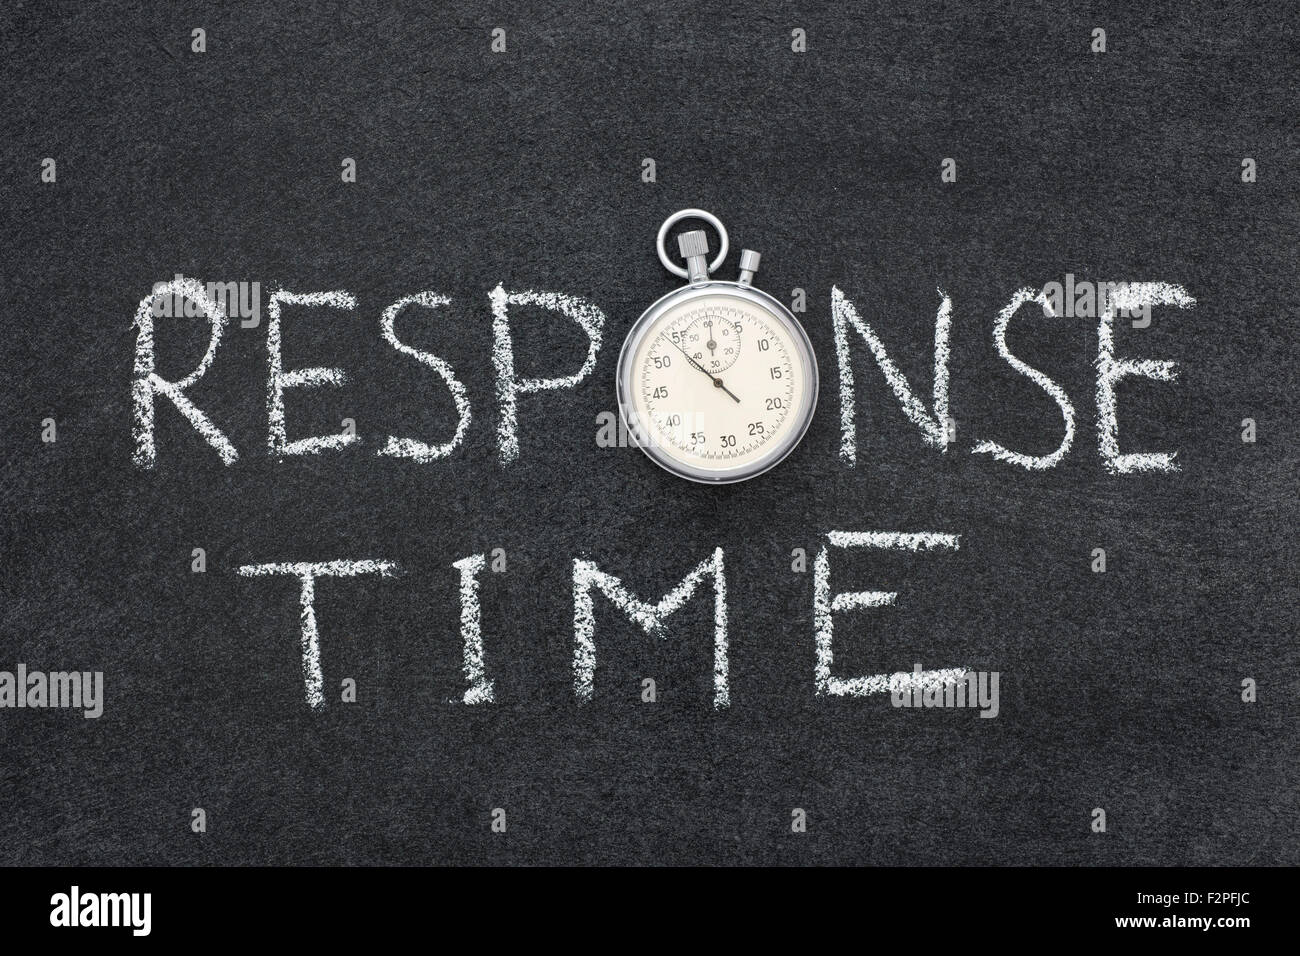 response time phrase handwritten on chalkboard with vintage precise stopwatch used instead of O - Stock Image